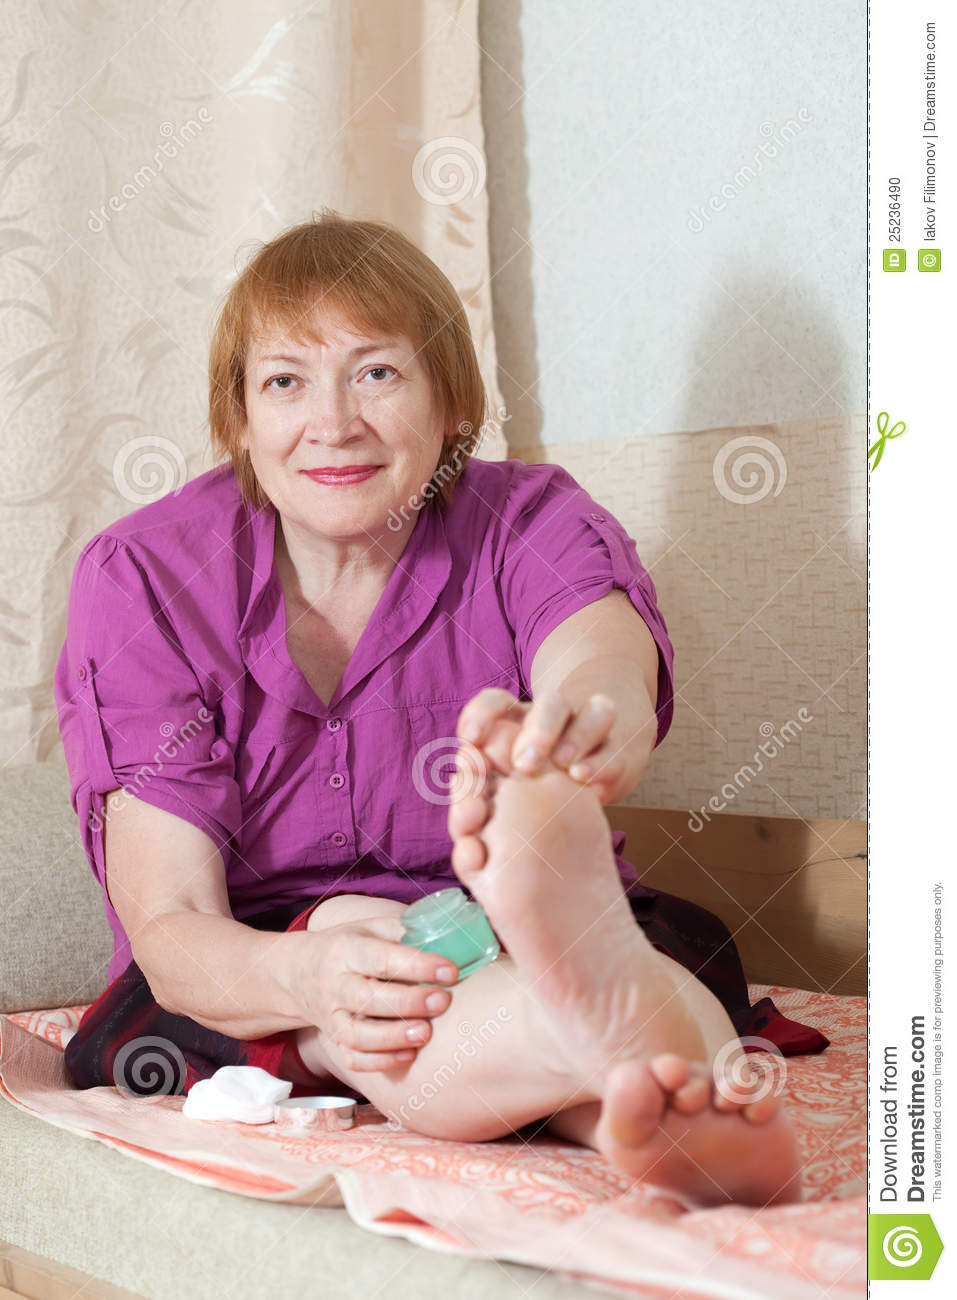 Woman Caring For The Nails On Your Feet Stock Photo